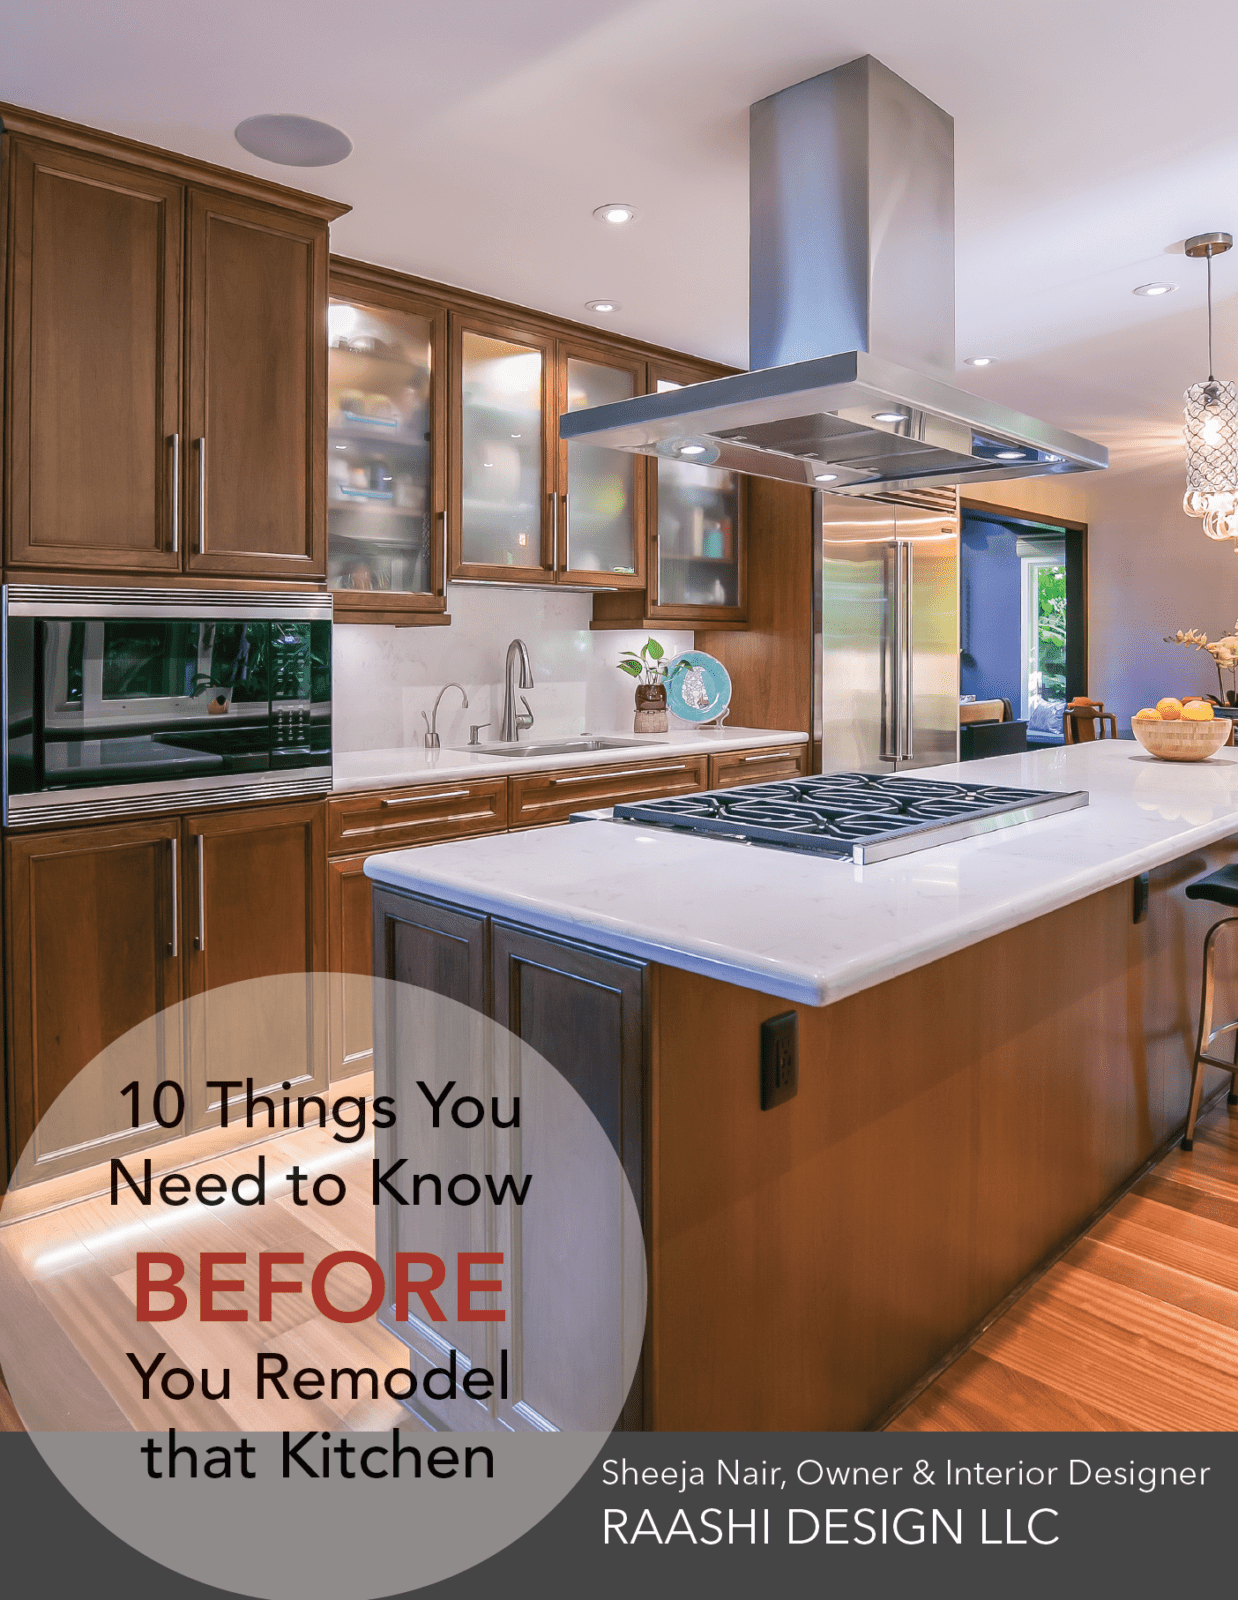 Raashi Design Kitchen Remodel Guide, Before You Remodel Your Kitchen